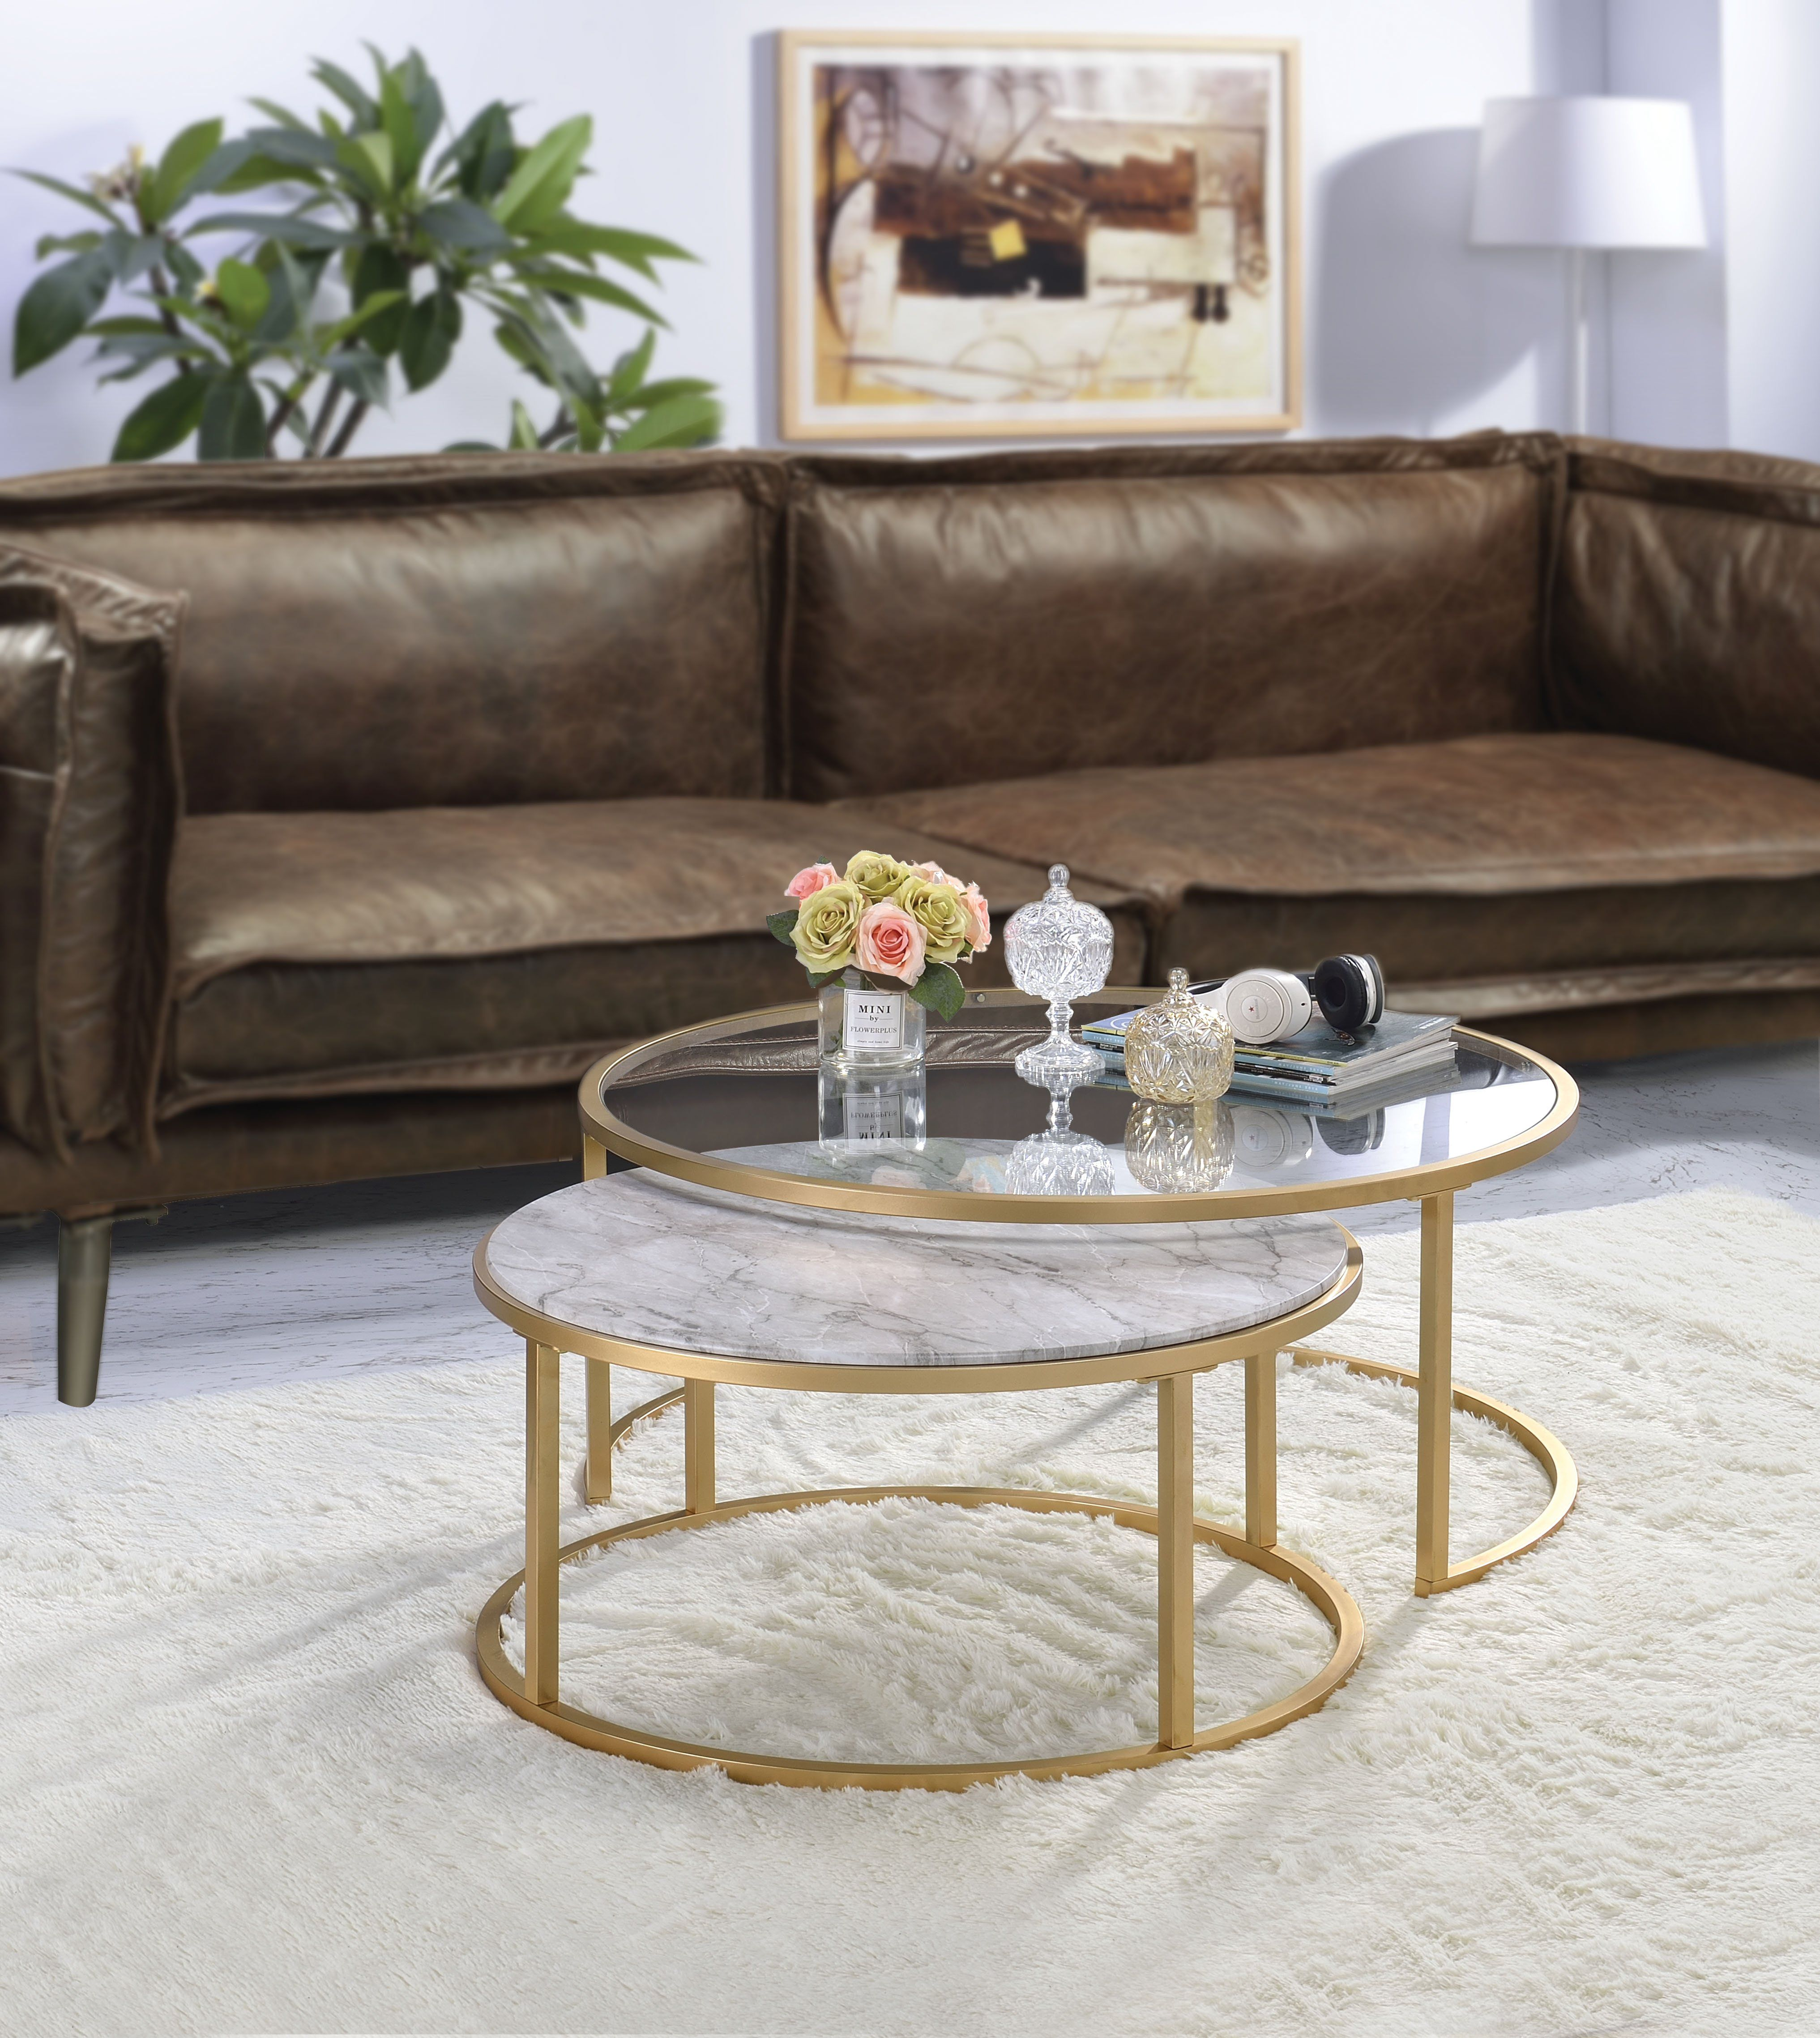 Bm193836 Metal Framed Nesting Coffee Tables With Glass And Marble Tops Set Of Two Gold In 2021 Gold Nesting Coffee Table Nesting Coffee Tables Coffee Table